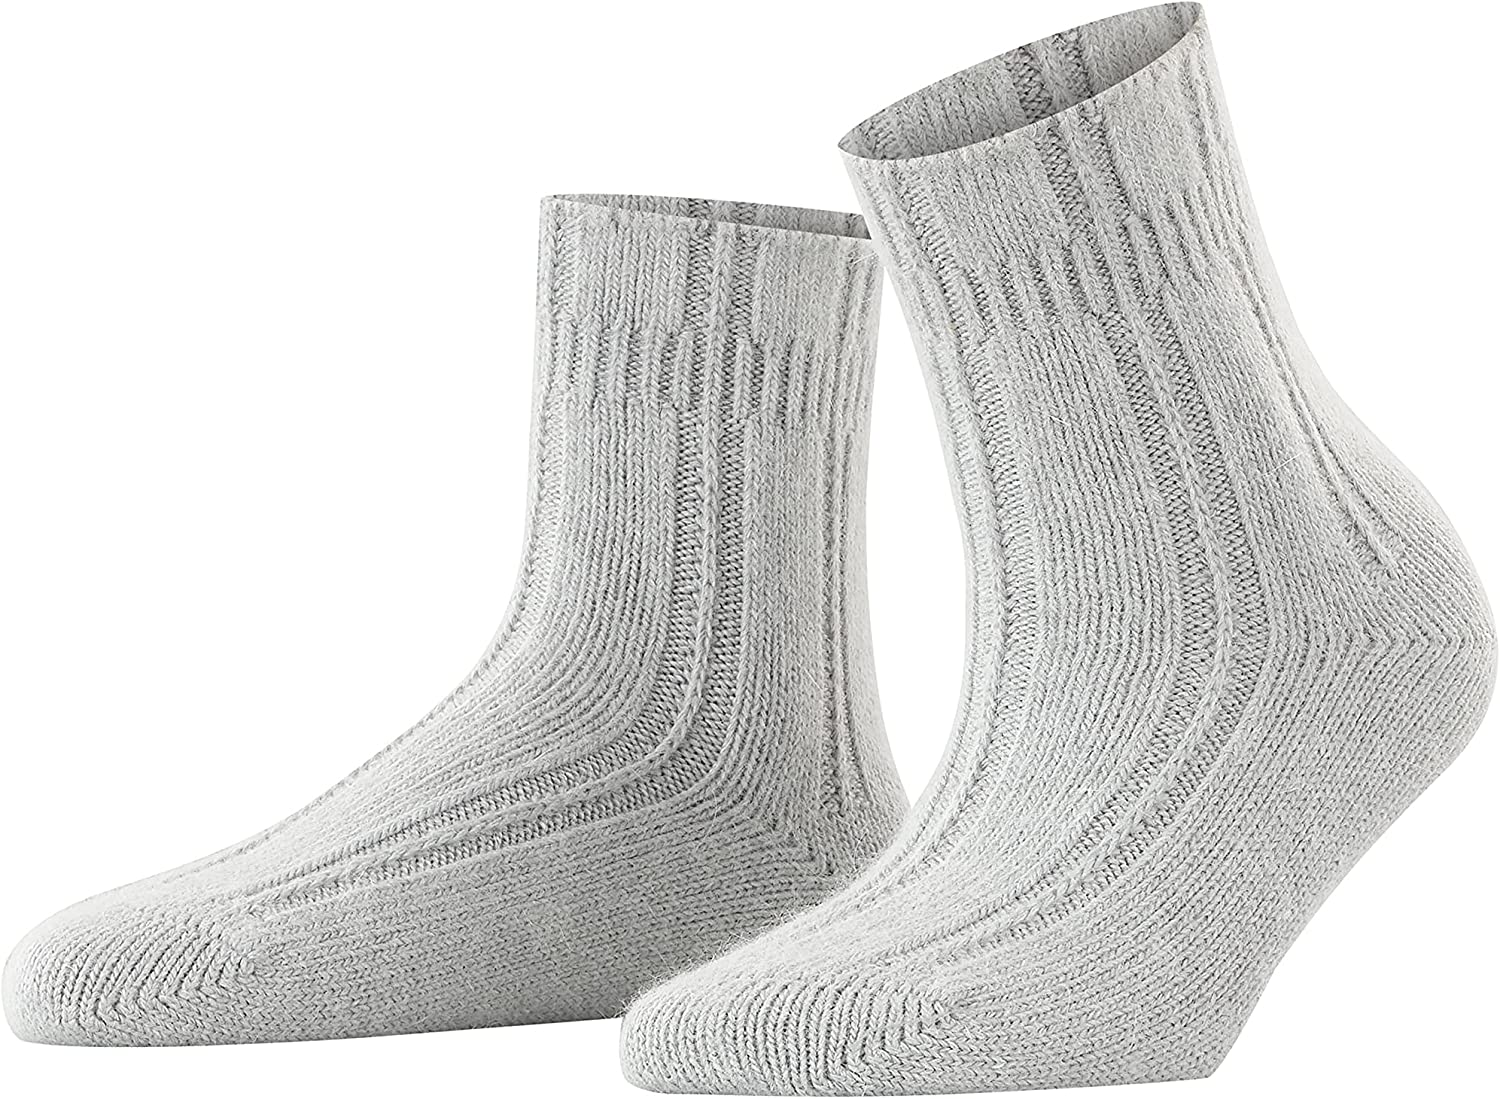 FALKE Womens Bedsock Casual Sock - Angora Blend, Multiple Colors, US sizes 5 to 10.5, 1 Pair